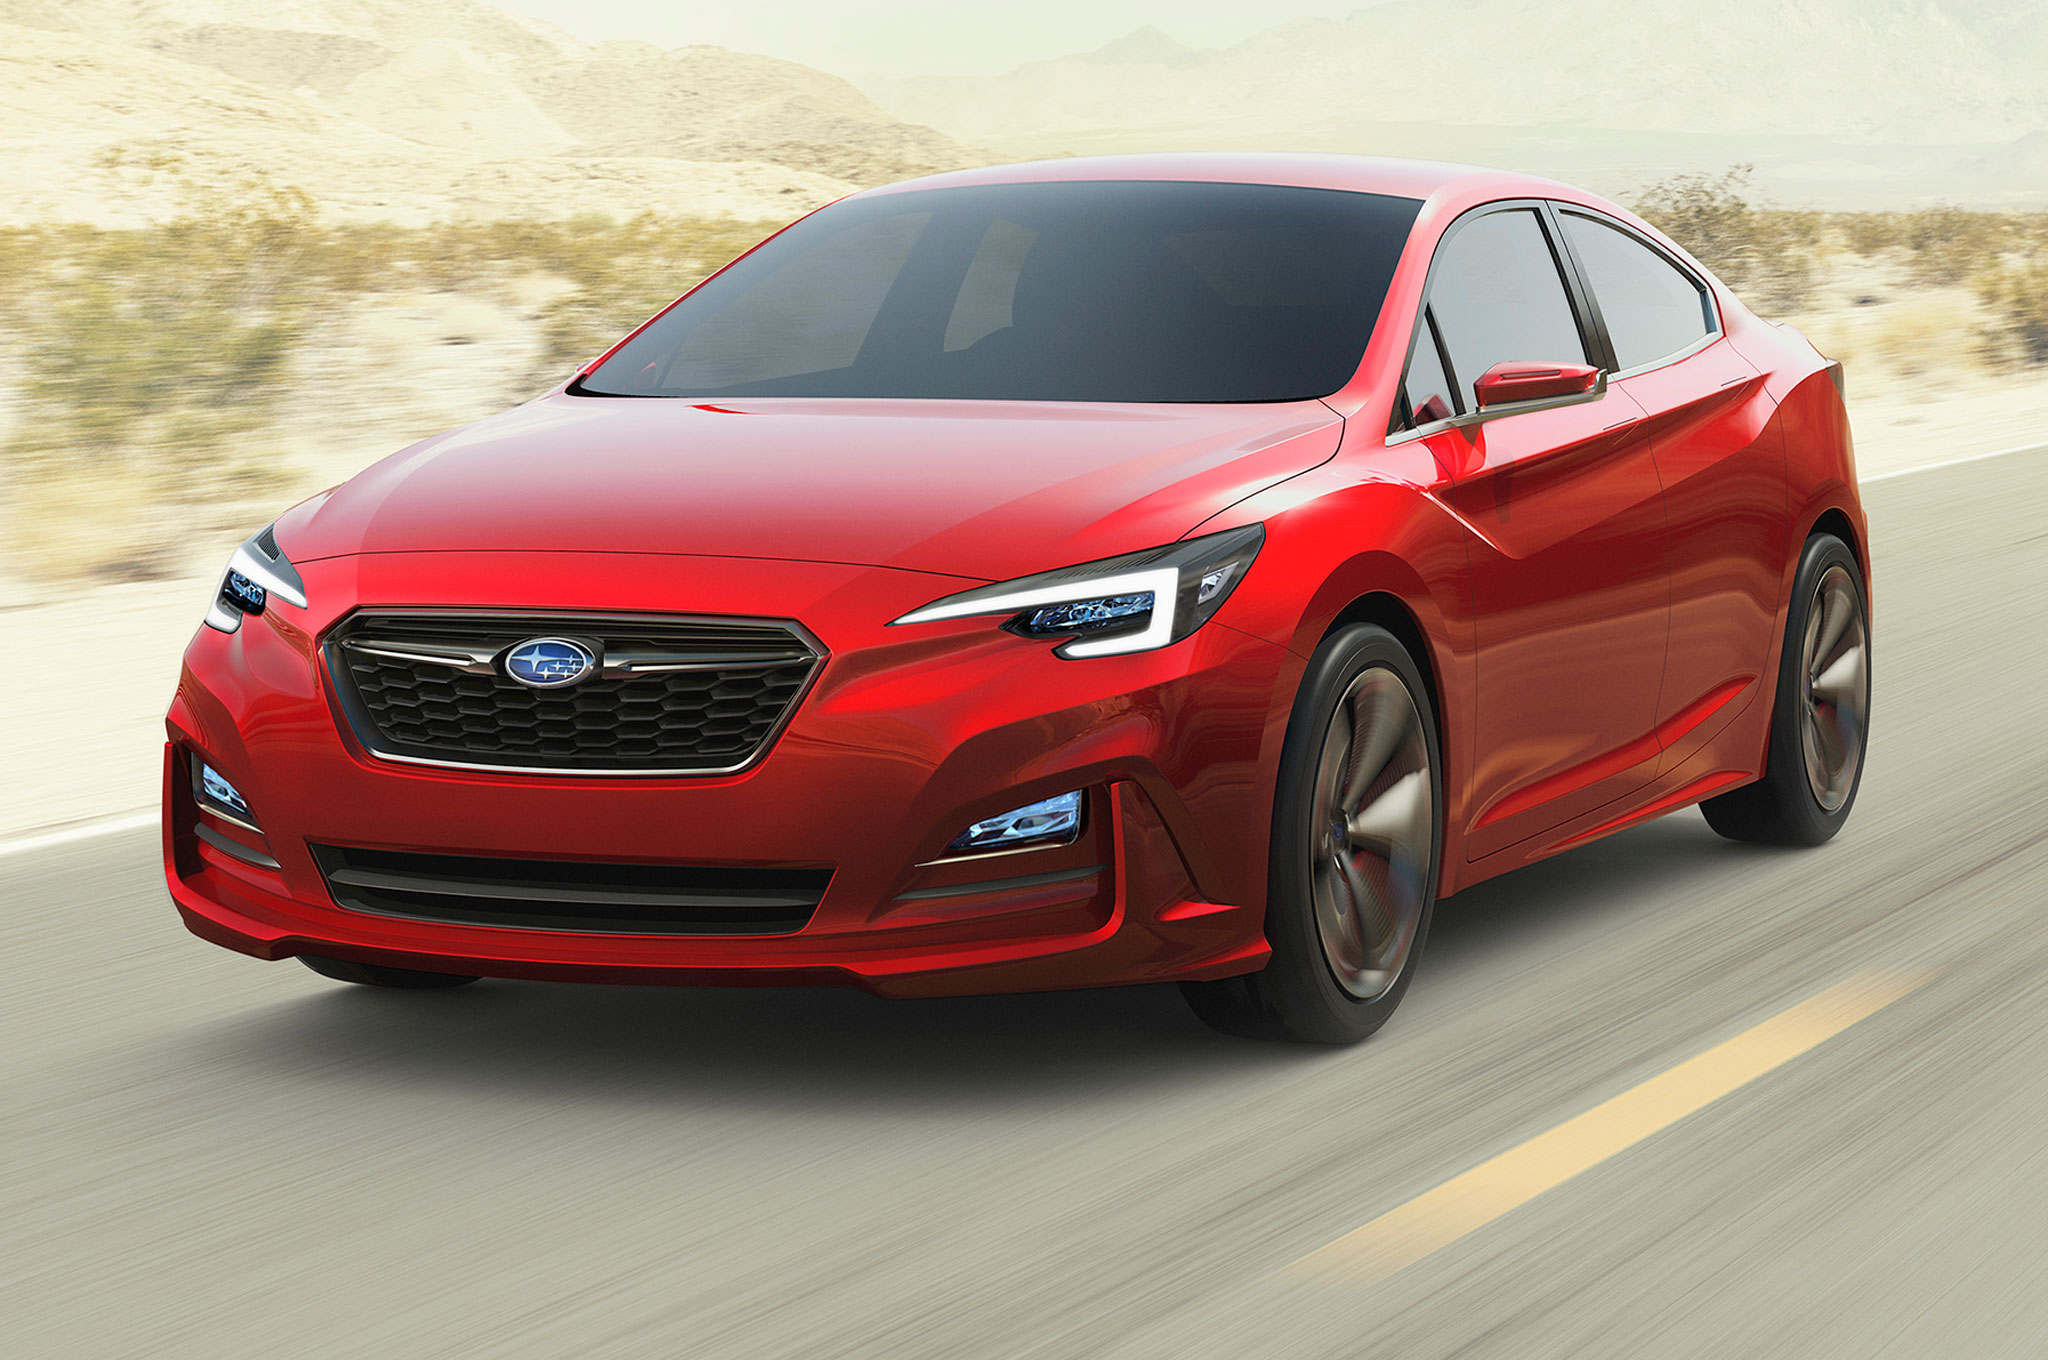 Five Things To Know About The Subaru Impreza Sedan Concept